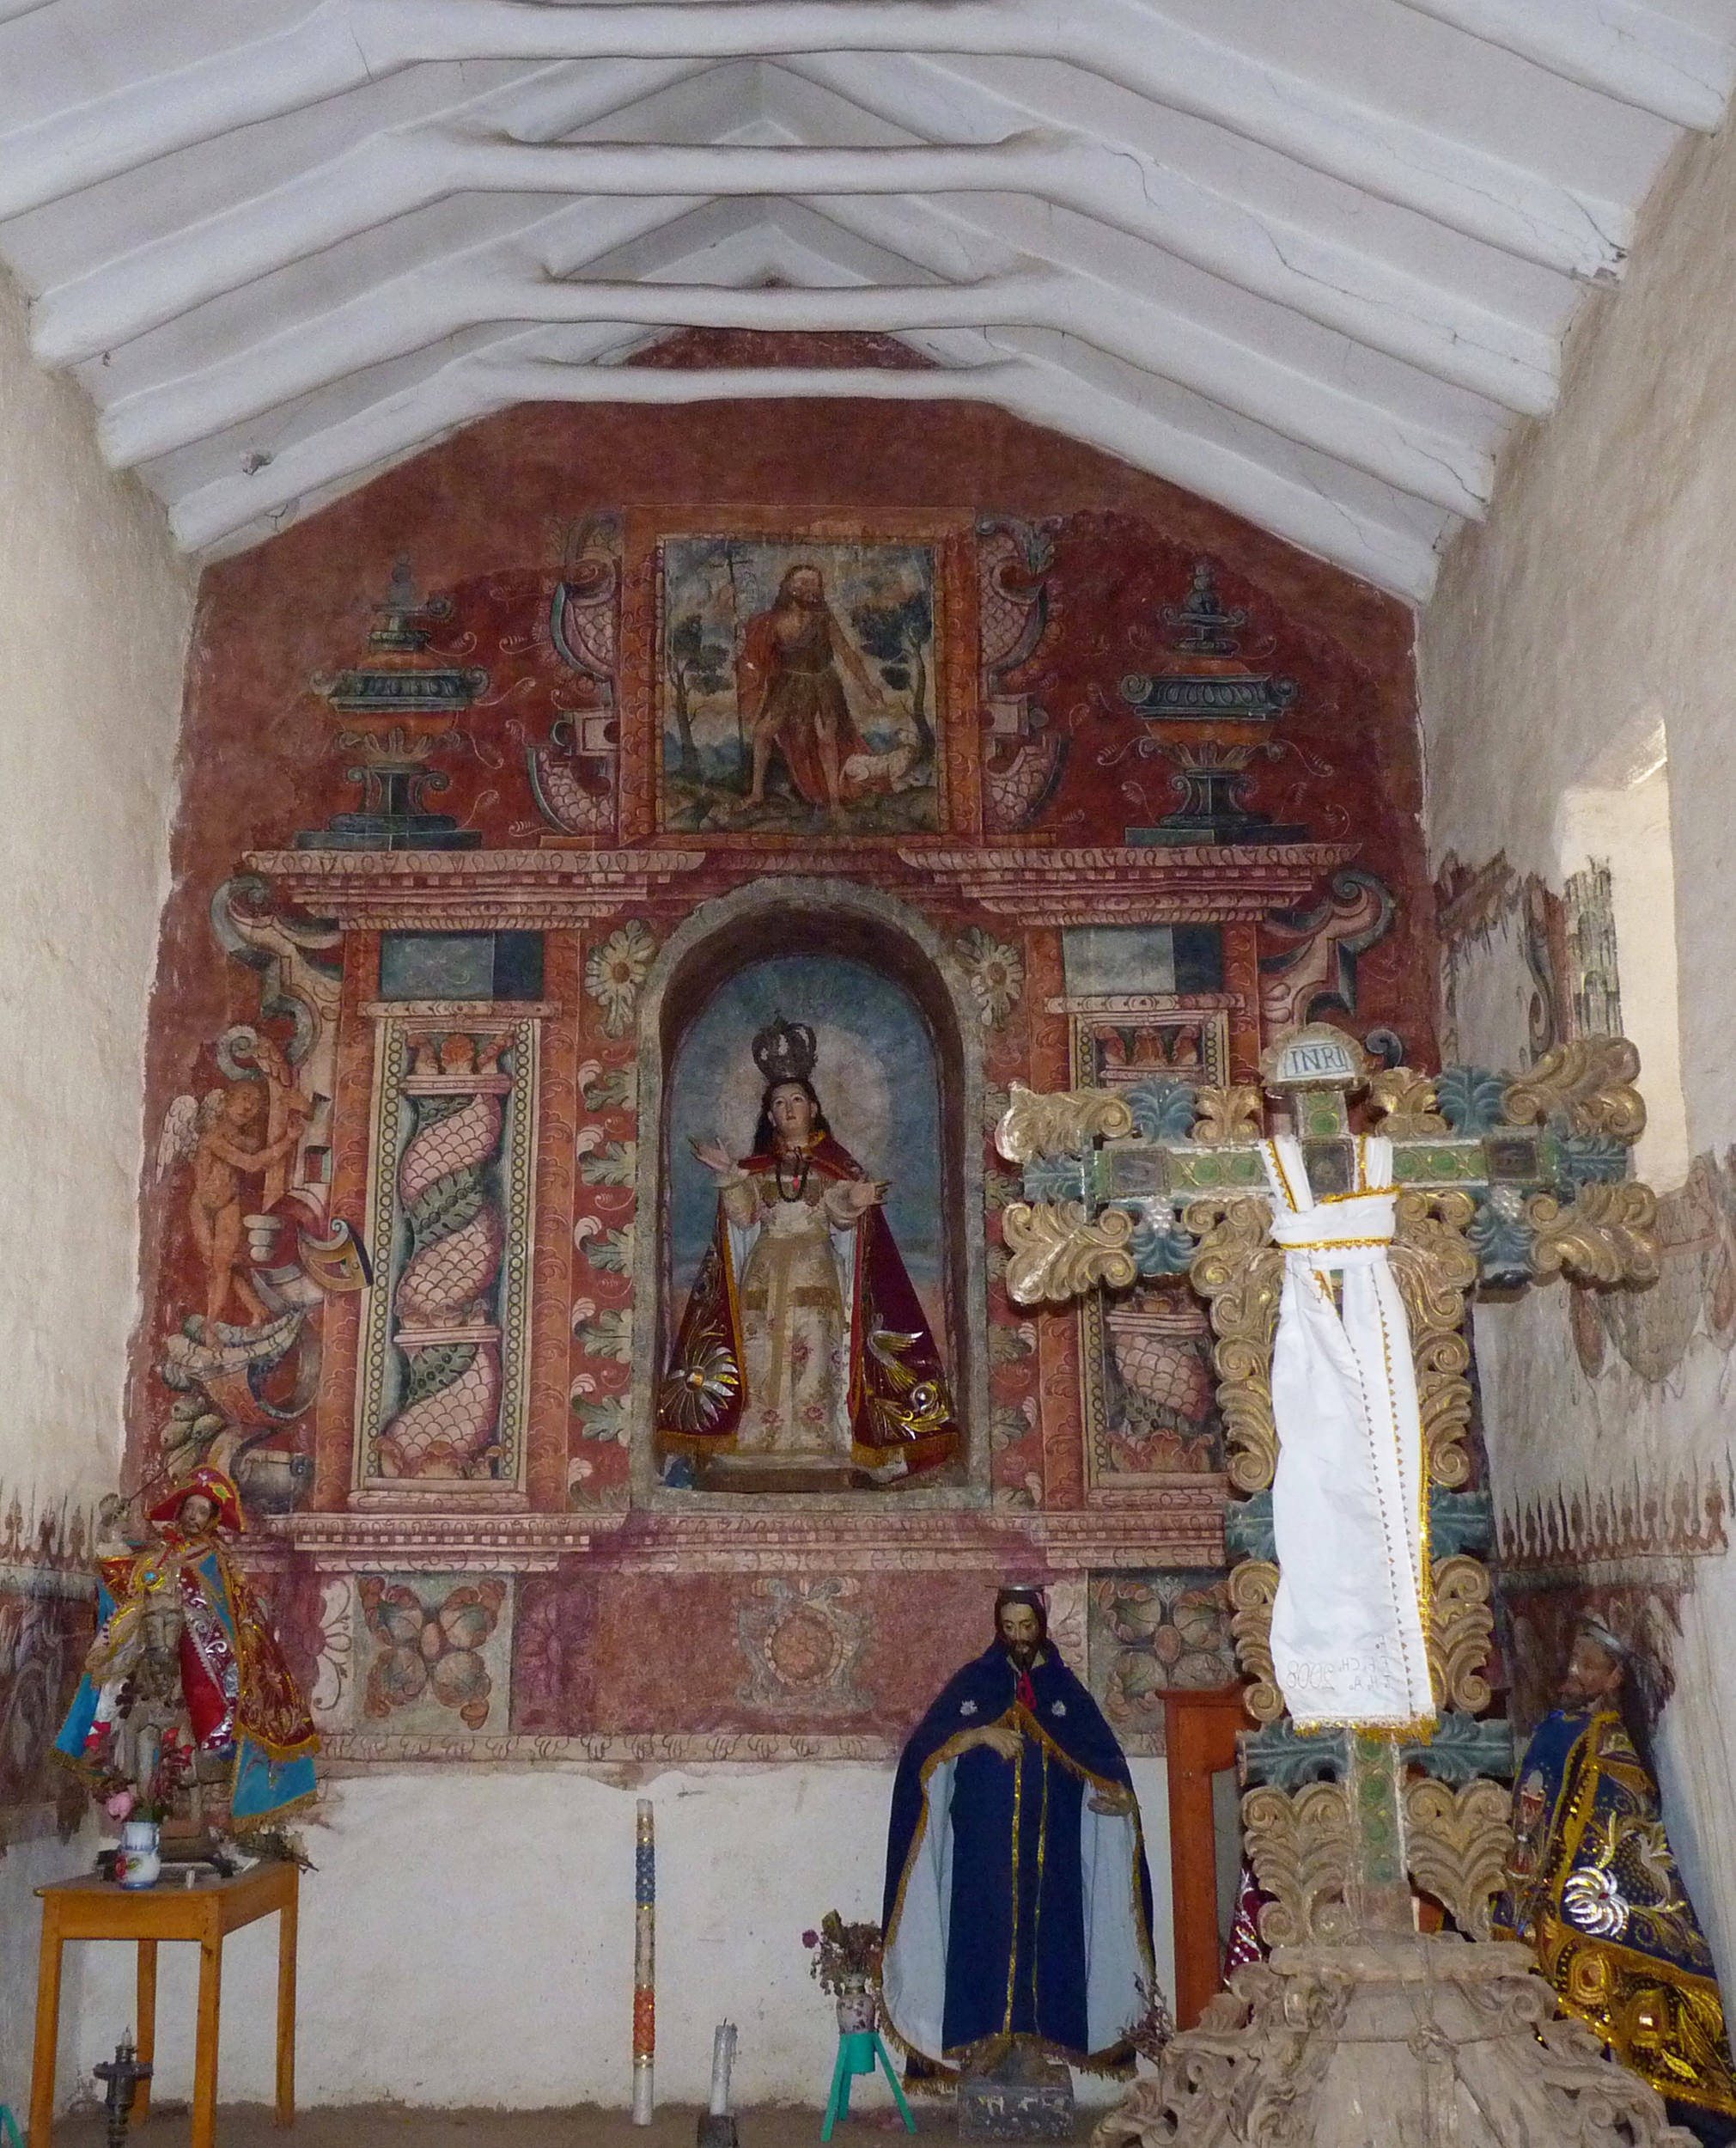 Fig. 36 Elaborate painted retablo with Solomonic columns, acanthus leaves, and other decorative flourishes, 17th or 18th century. Church of Pitumarca, Canchis Province. Photo by Raúl Montero Quispe.